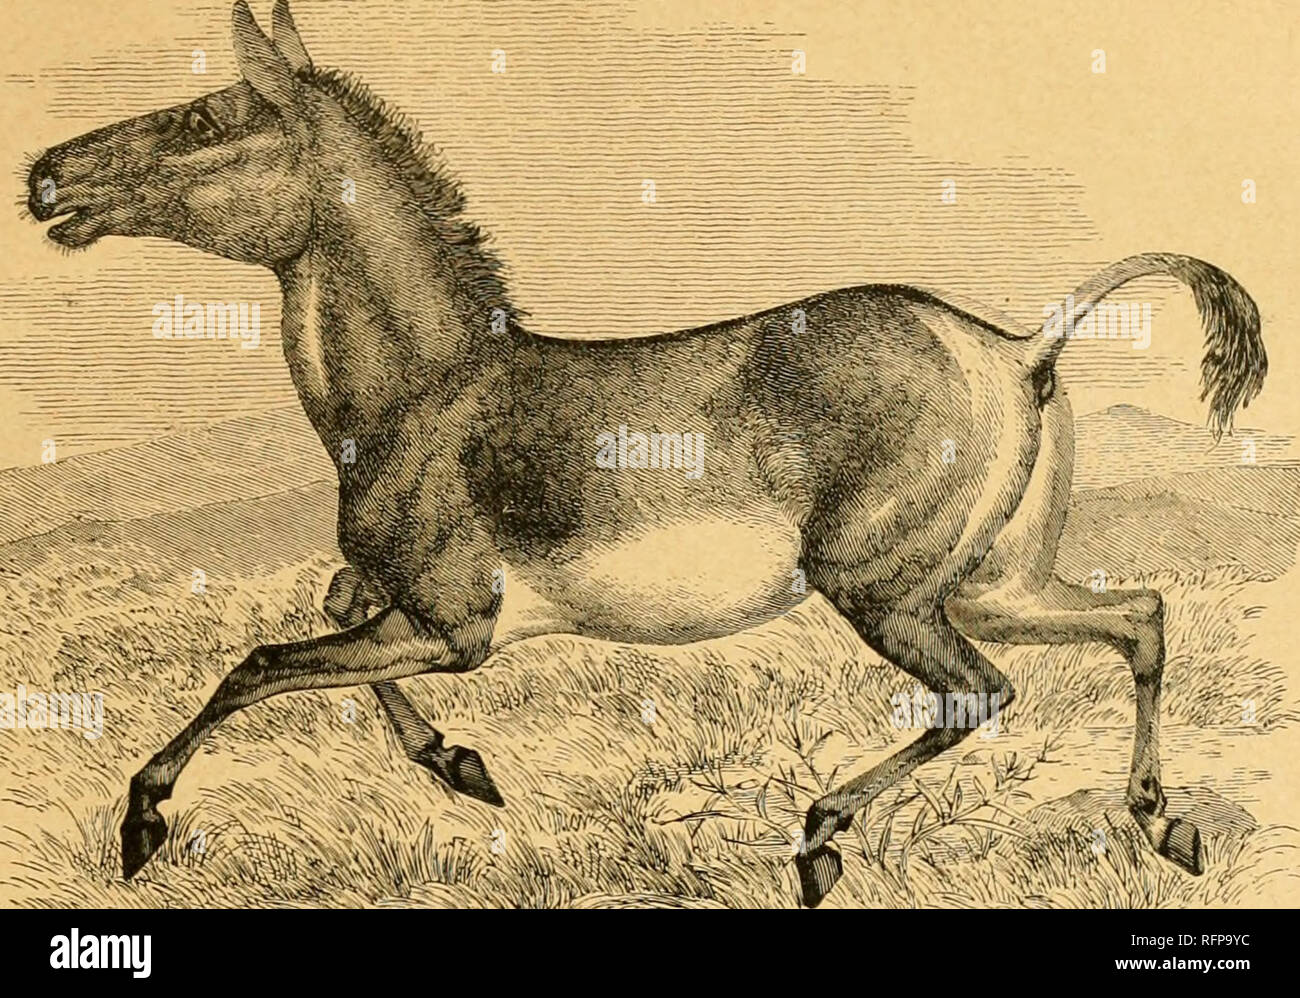 """. Cassell's natural history. Animals; Animal behavior. ^^'!?r'^T ORDER UNGULATA (HOOFED QUADRUPEDS). CHAPTER I. PERISSODACTYLA—THE EQUID.E, OR HORSE FAMILY. Order UNGULATA — Divisions — PERISSODACTYLA — Characteristics—Equid* — Species — Descent — First Domestic Horses in Europe—Used for Food- Mention of the Horse in the Bible—War-Chariots—the Horse among the Greeks and Romans—in Britain—Attempts to Improve the Breeil—Colour—Teeth—"""" The Mark """"—the Foot—Skull—Disease from the Gad-fly—Eace-Horse—Tkotting-Horse ok Asierica-Drav Horse—Shetland Pont—Arab and Bare- Persian Horse—Wild Horse - Stock Image"""